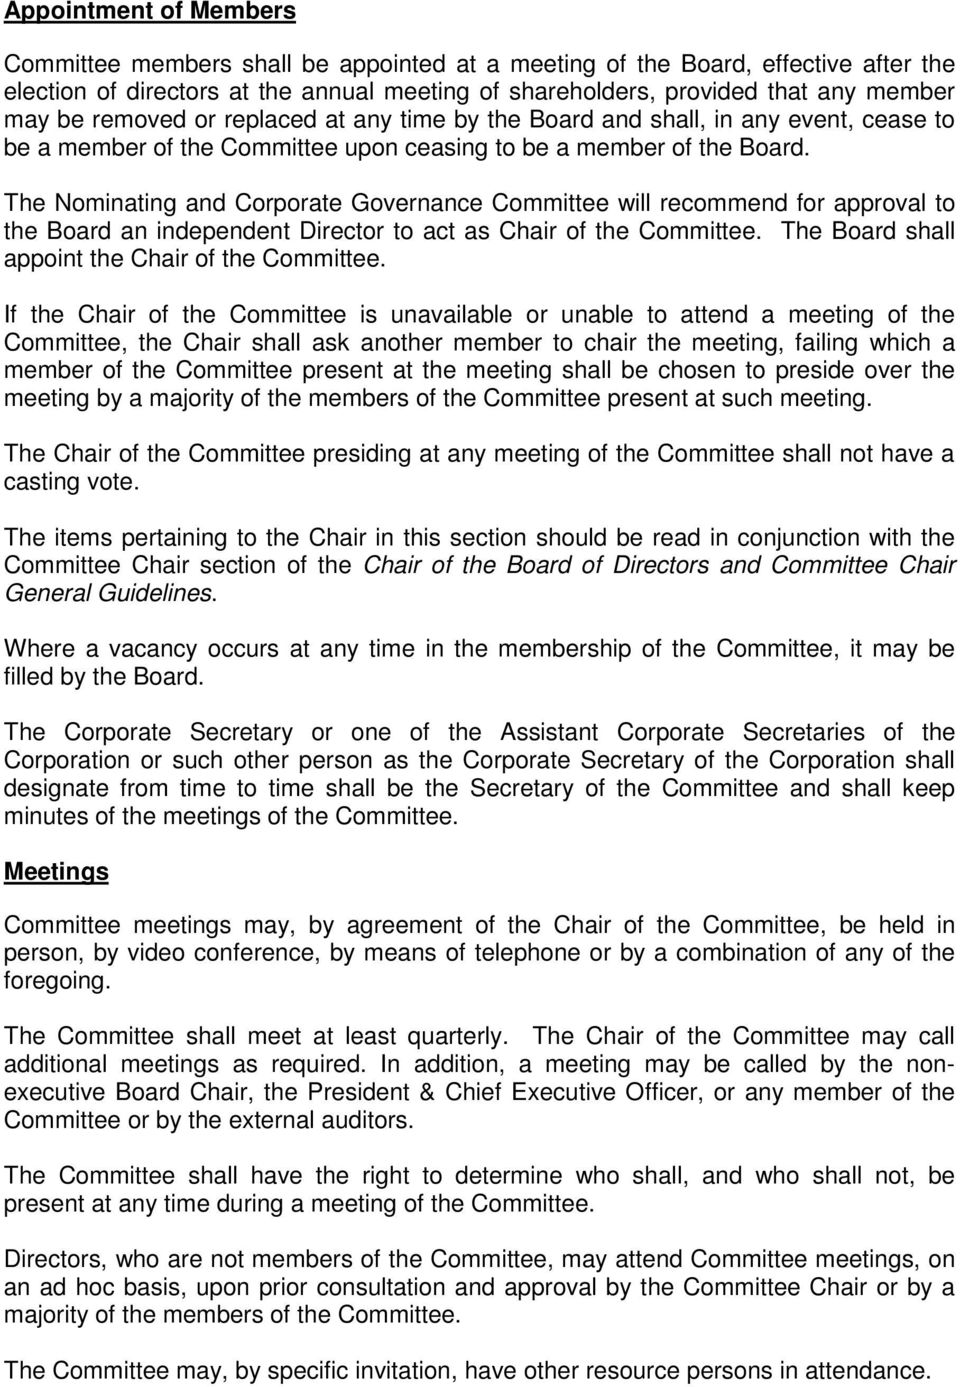 The Nominating and Corporate Governance Committee will recommend for approval to the Board an independent Director to act as Chair of the Committee. The Board shall appoint the Chair of the Committee.